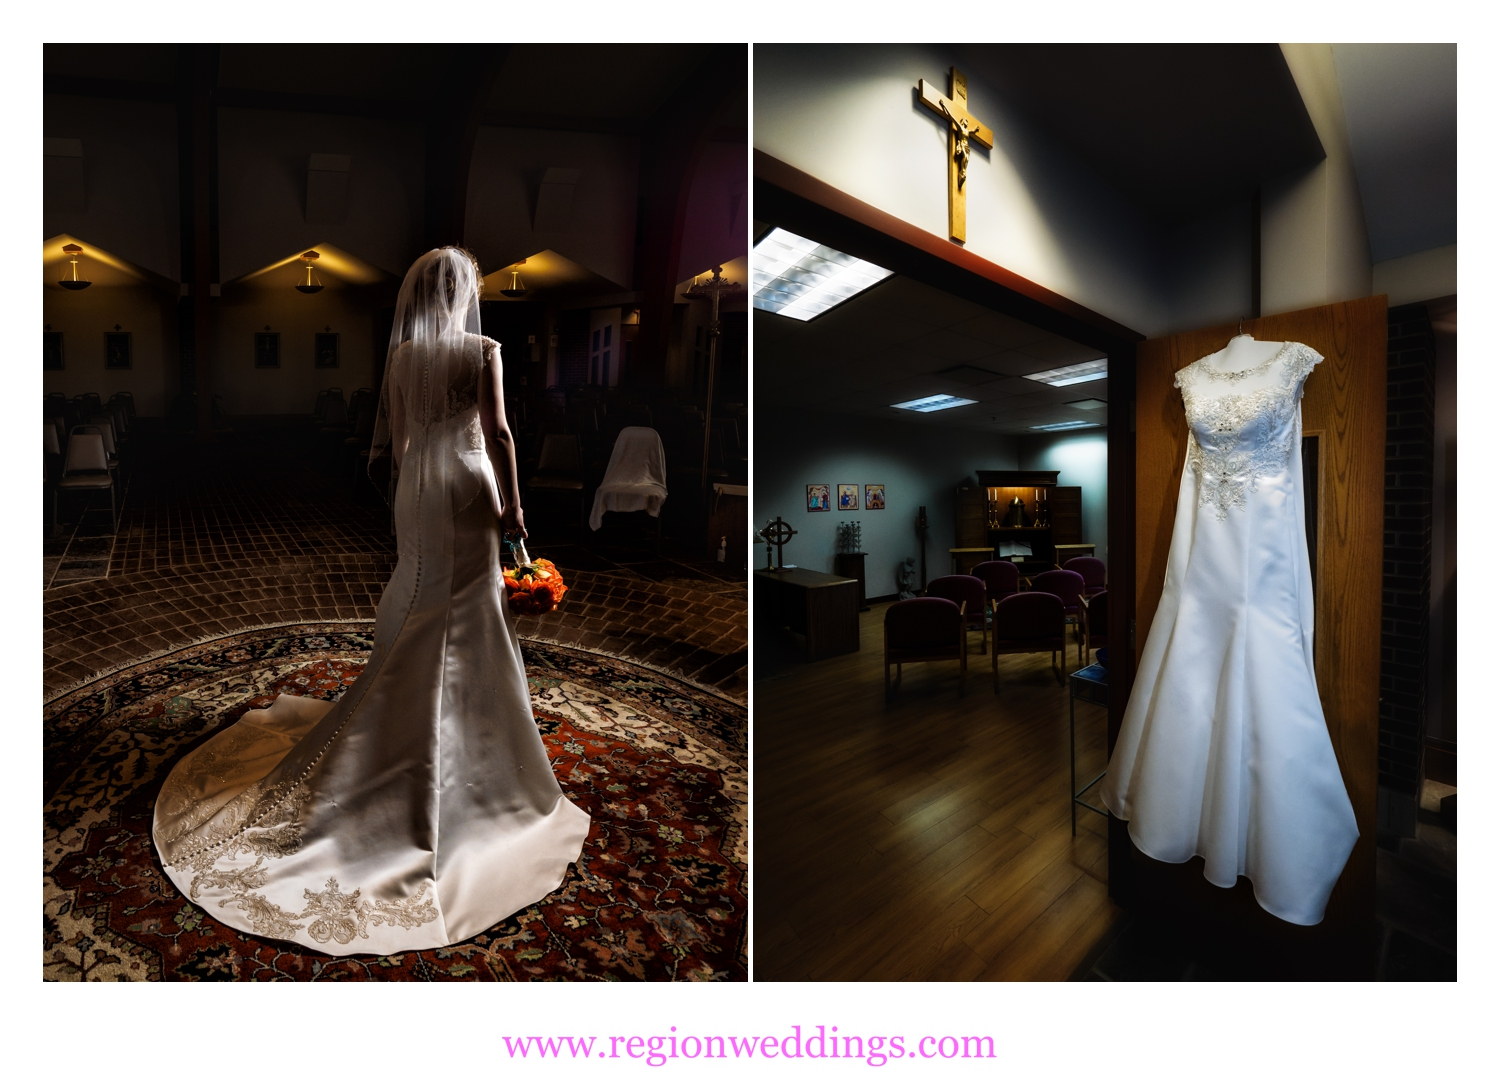 The bride shows off her dress at Holy Spirit Catholic Church.